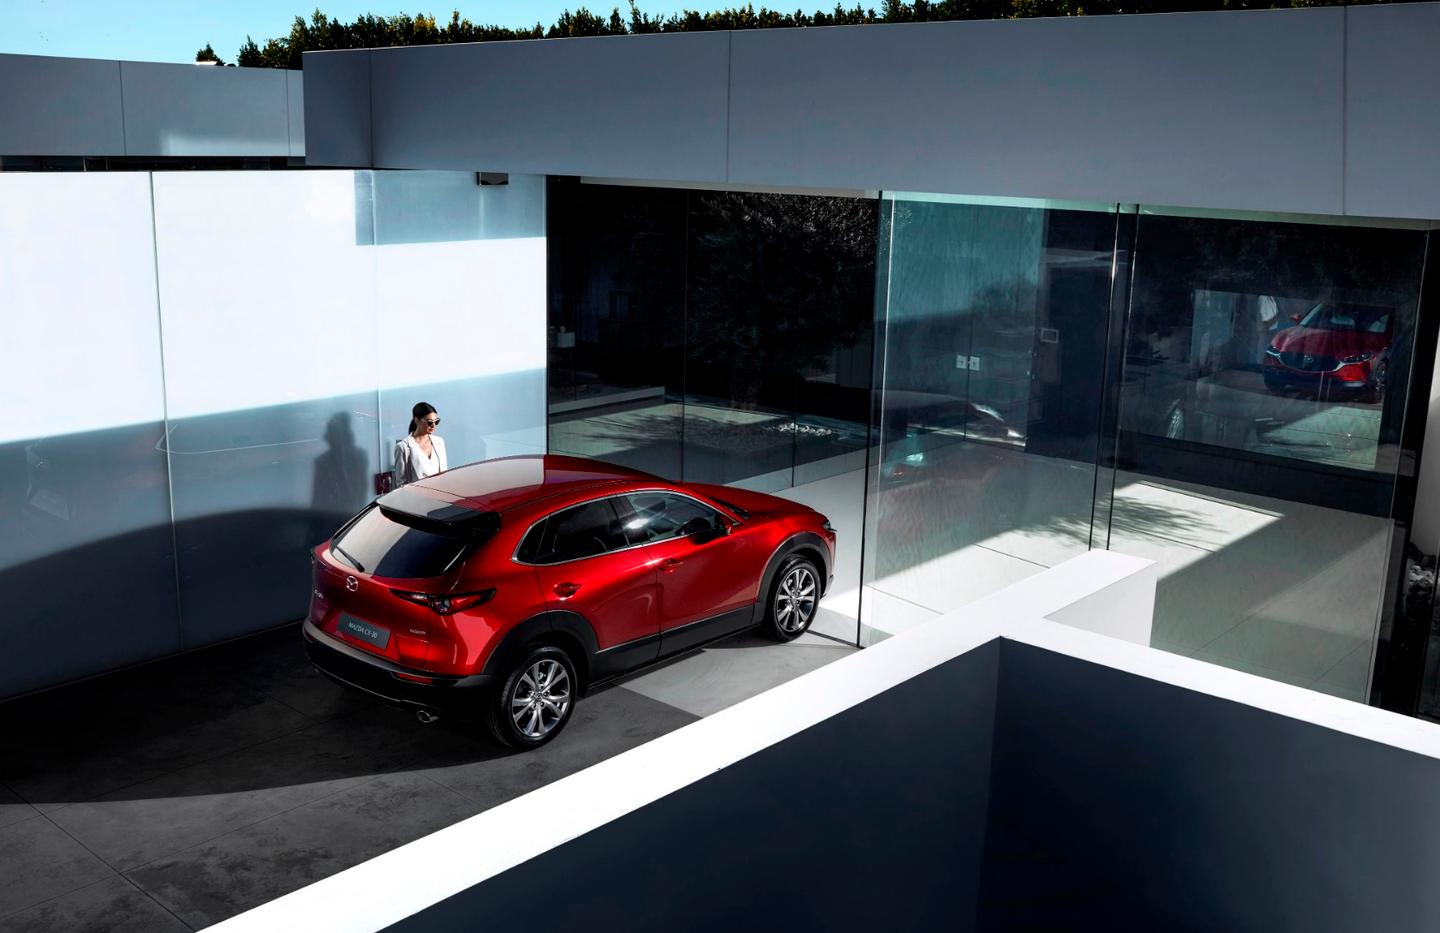 Mazda has not stated pricing, performance, or fuel economy numbers for the CX-30, nor has it released an anticipated sale date for the new crossover